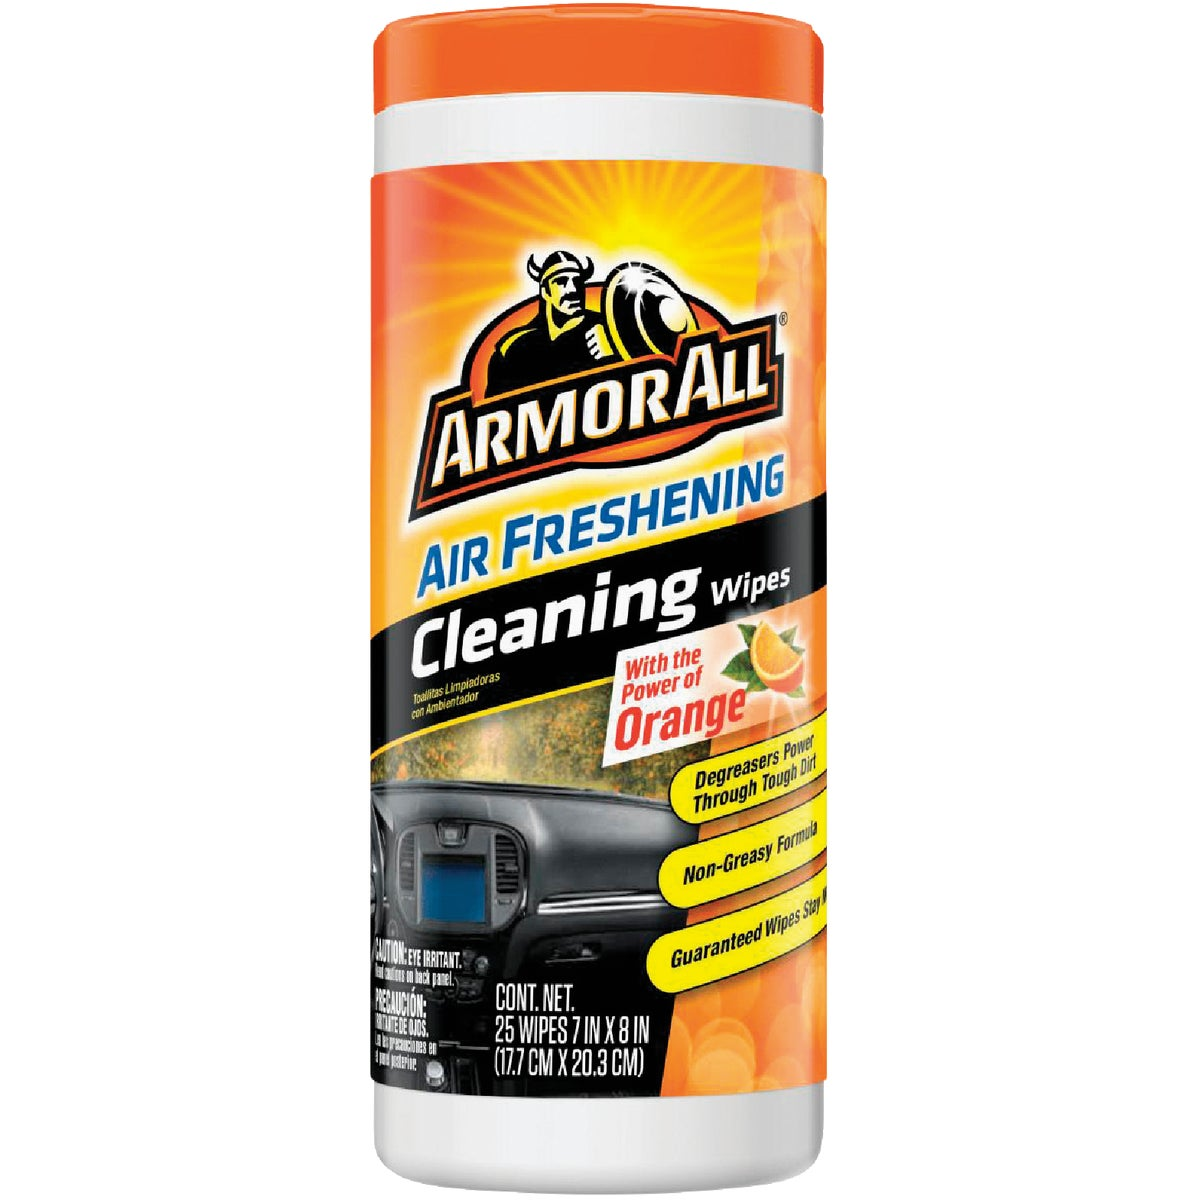 25 ORANGE CLEANING WIPES - 10831 by Armored Autogroup